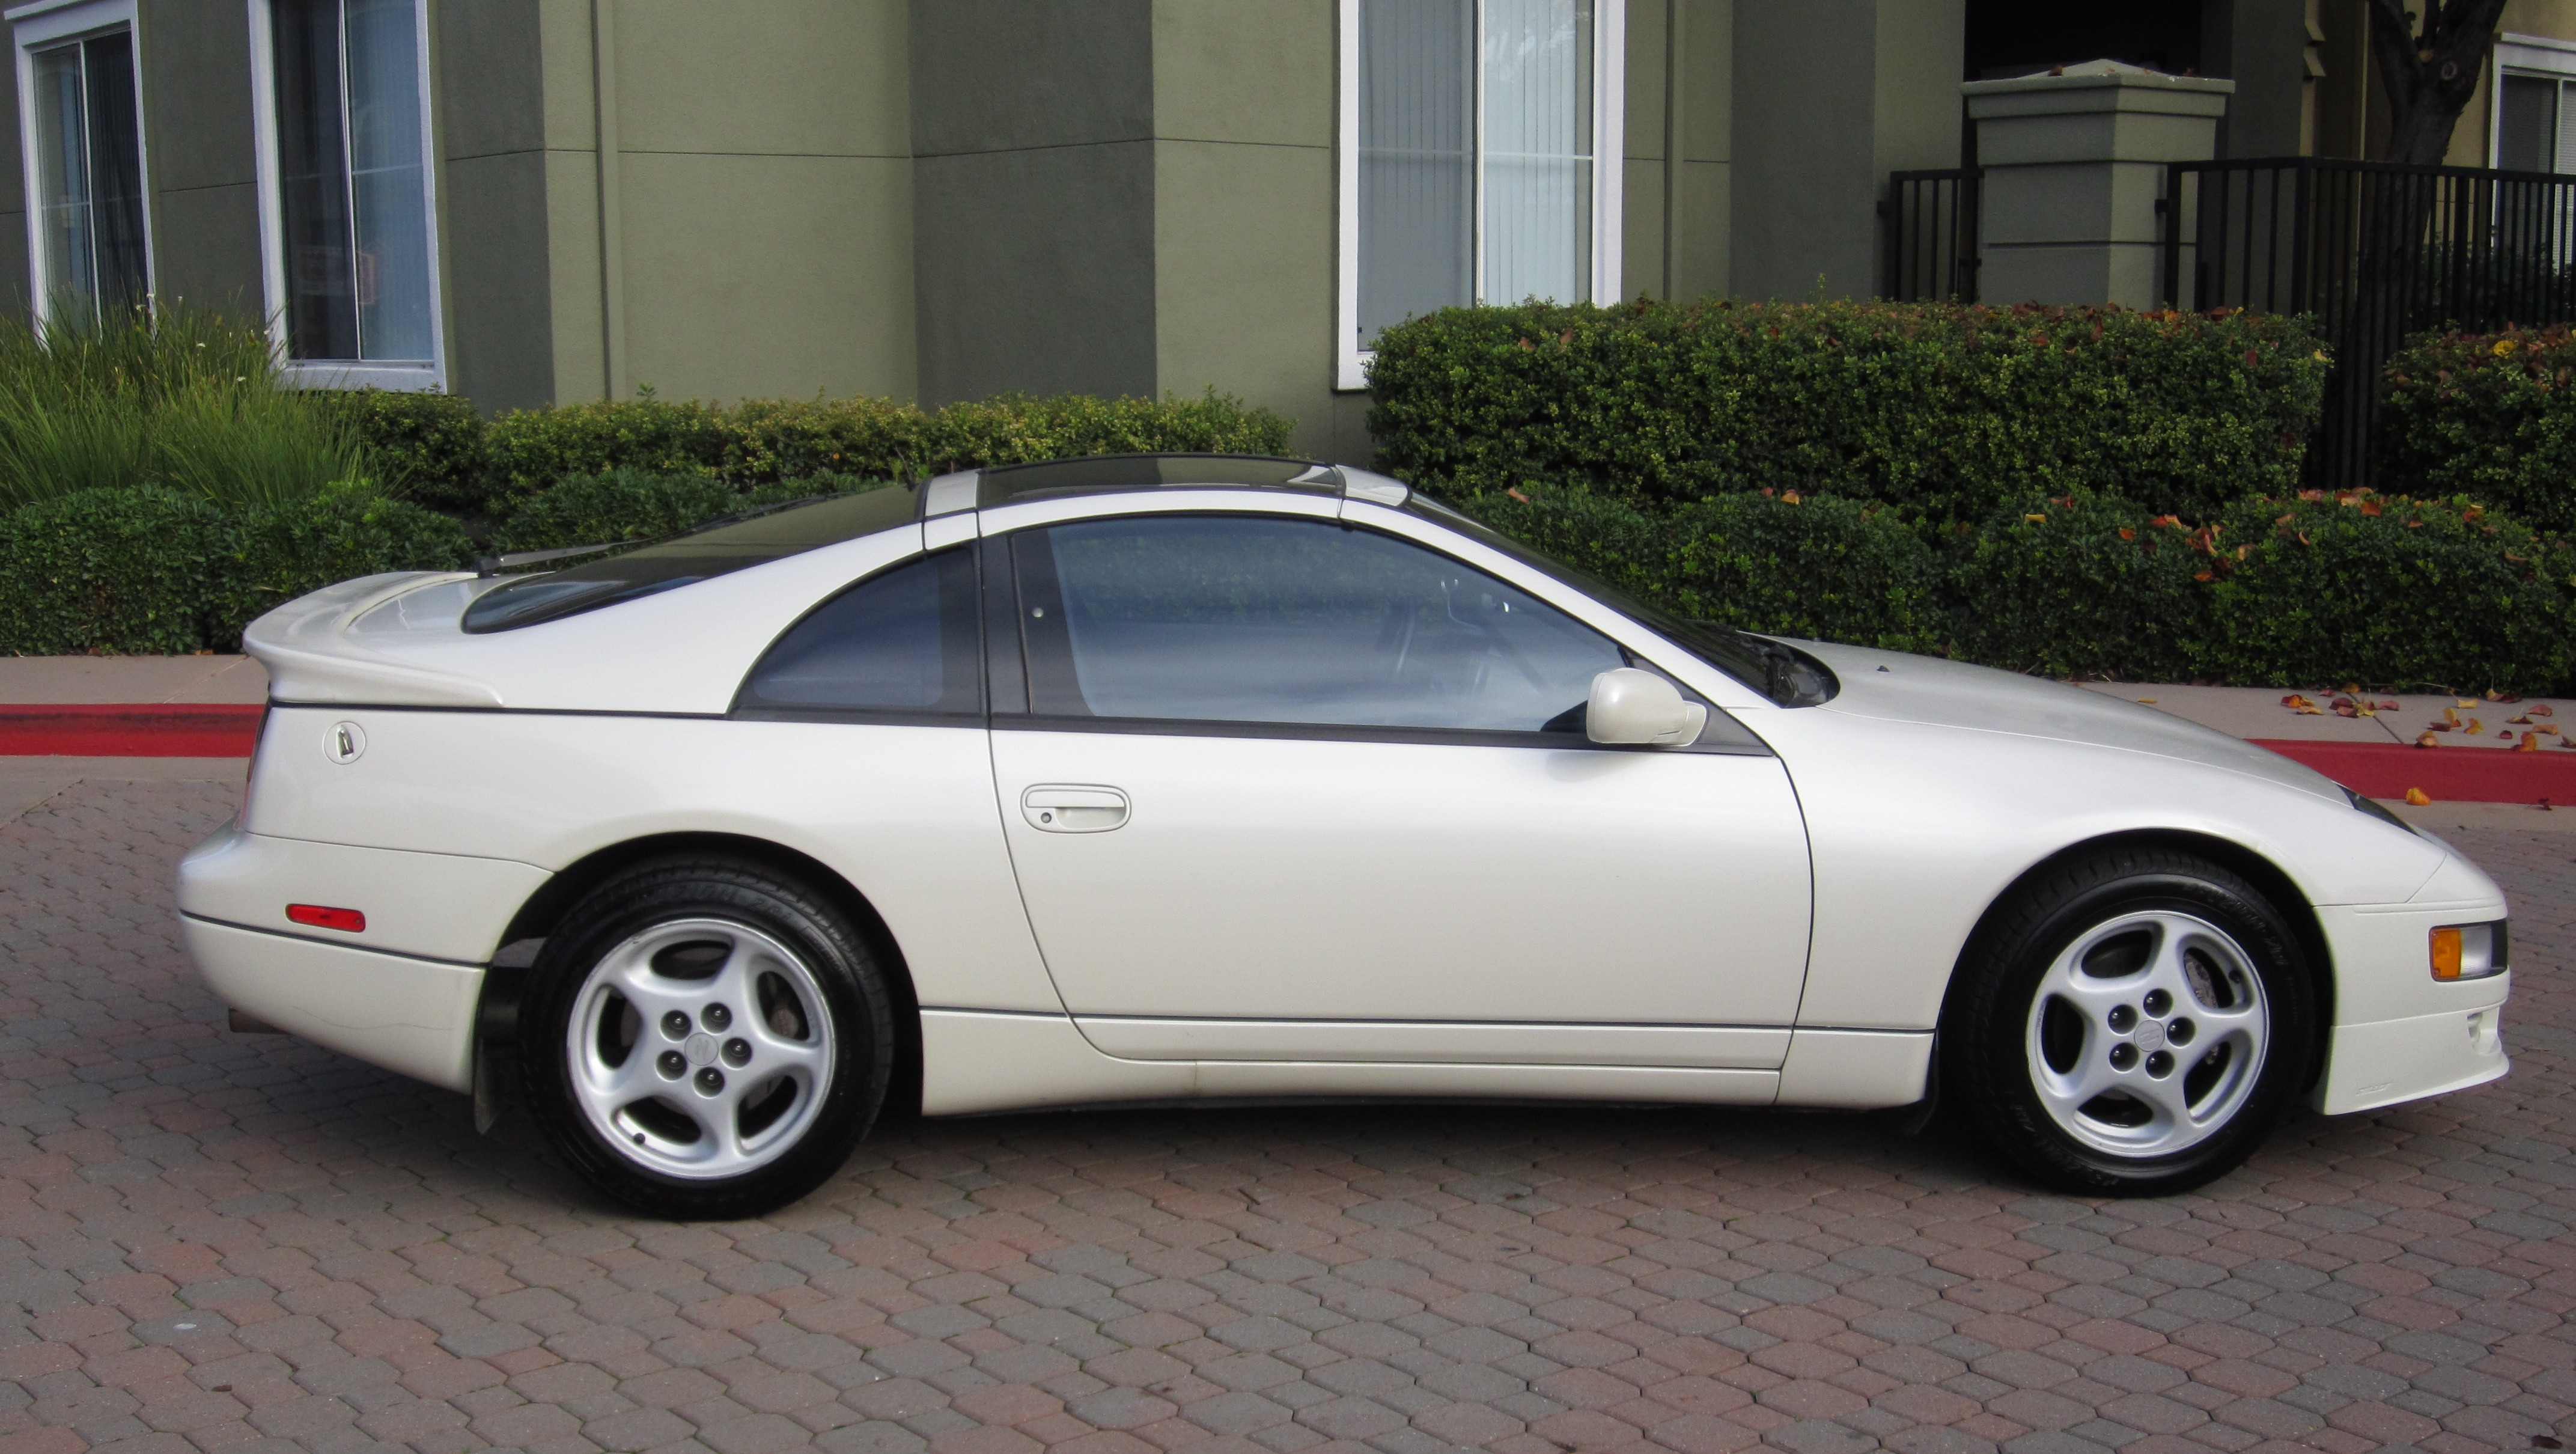 Nissan 300zx For Sale >> Z-Car Blog » Post Topic » David's Z32 Twin-Turbo